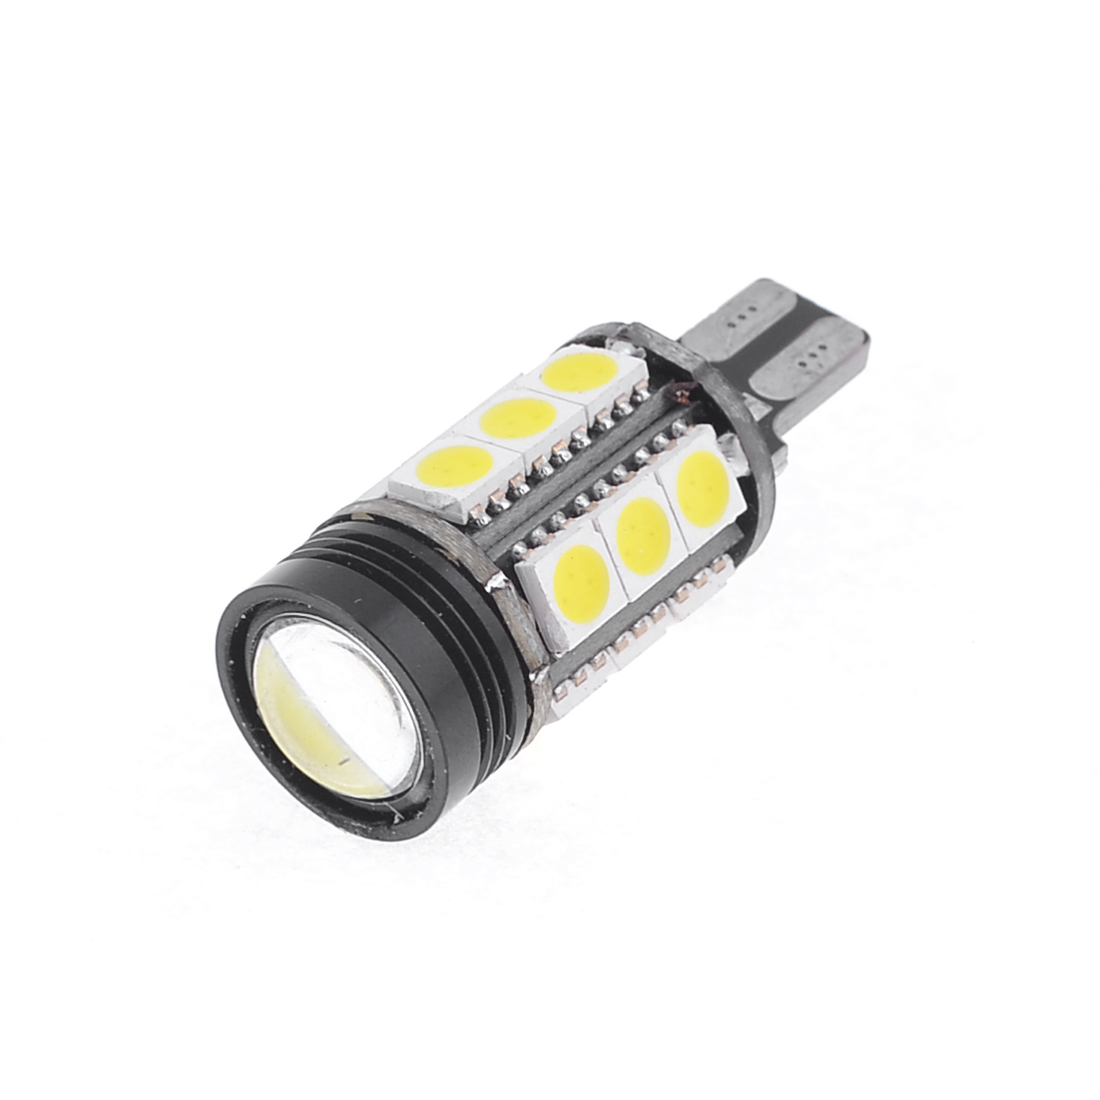 Car T15 T10 W16W 194 W5W 8W 16 White SMD 5050 LED Panel Light Lamp Bulb internal